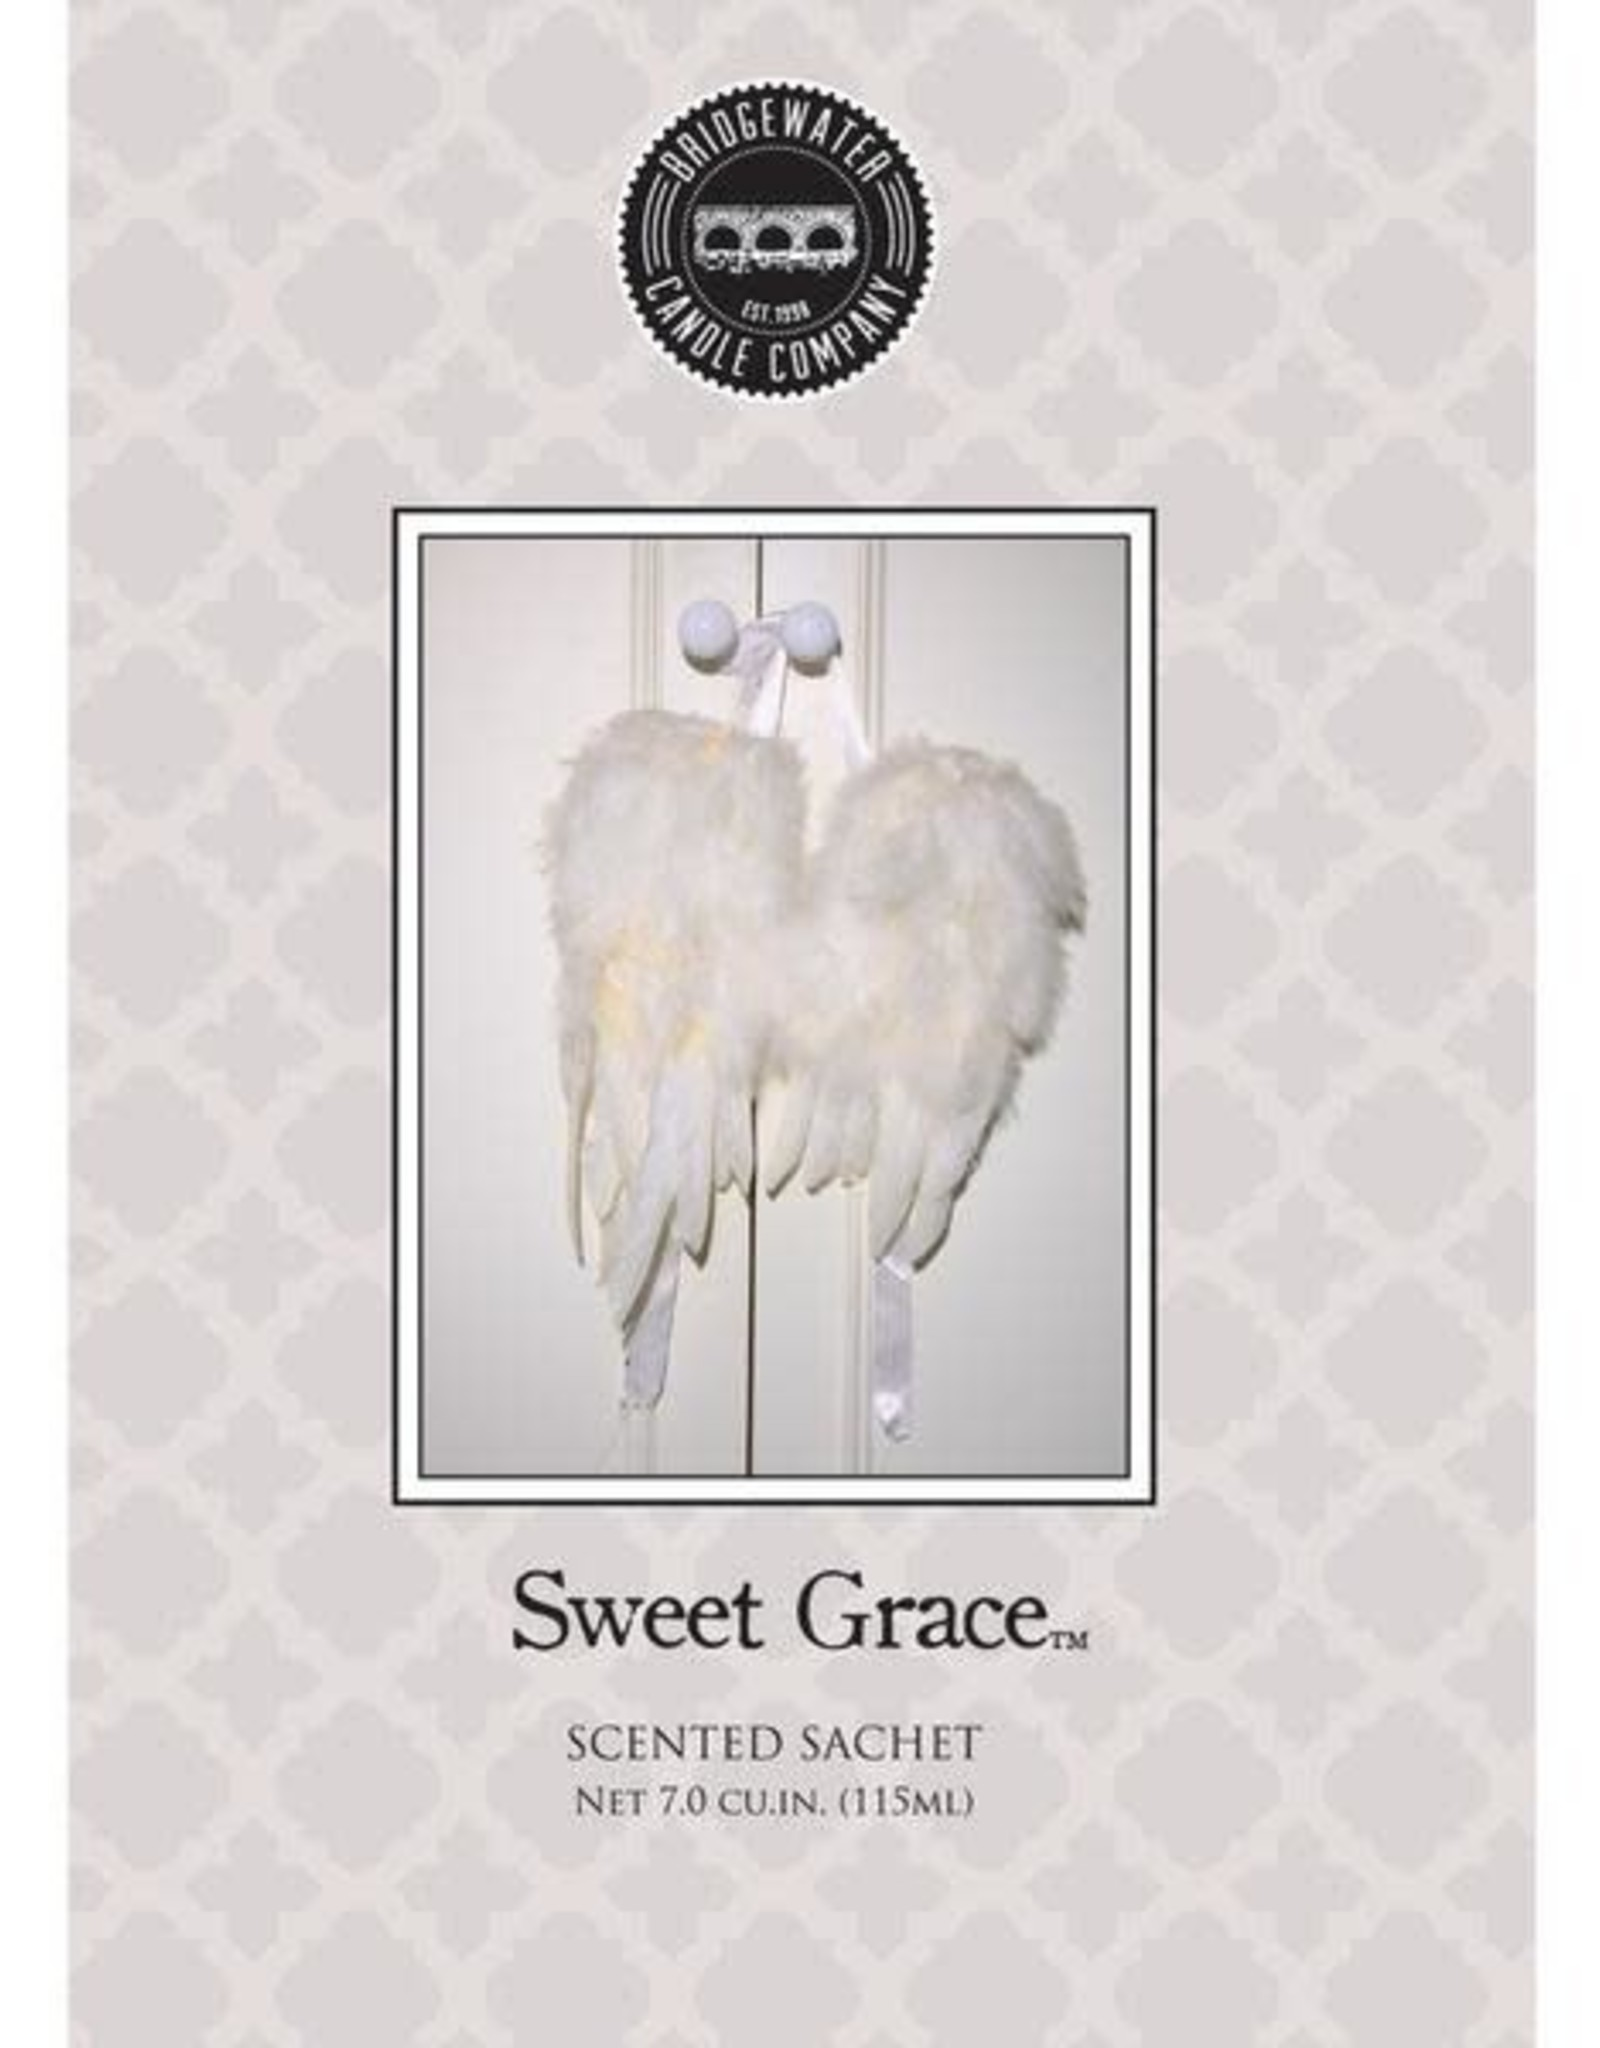 Bridgewater Sweet Grace Sachet